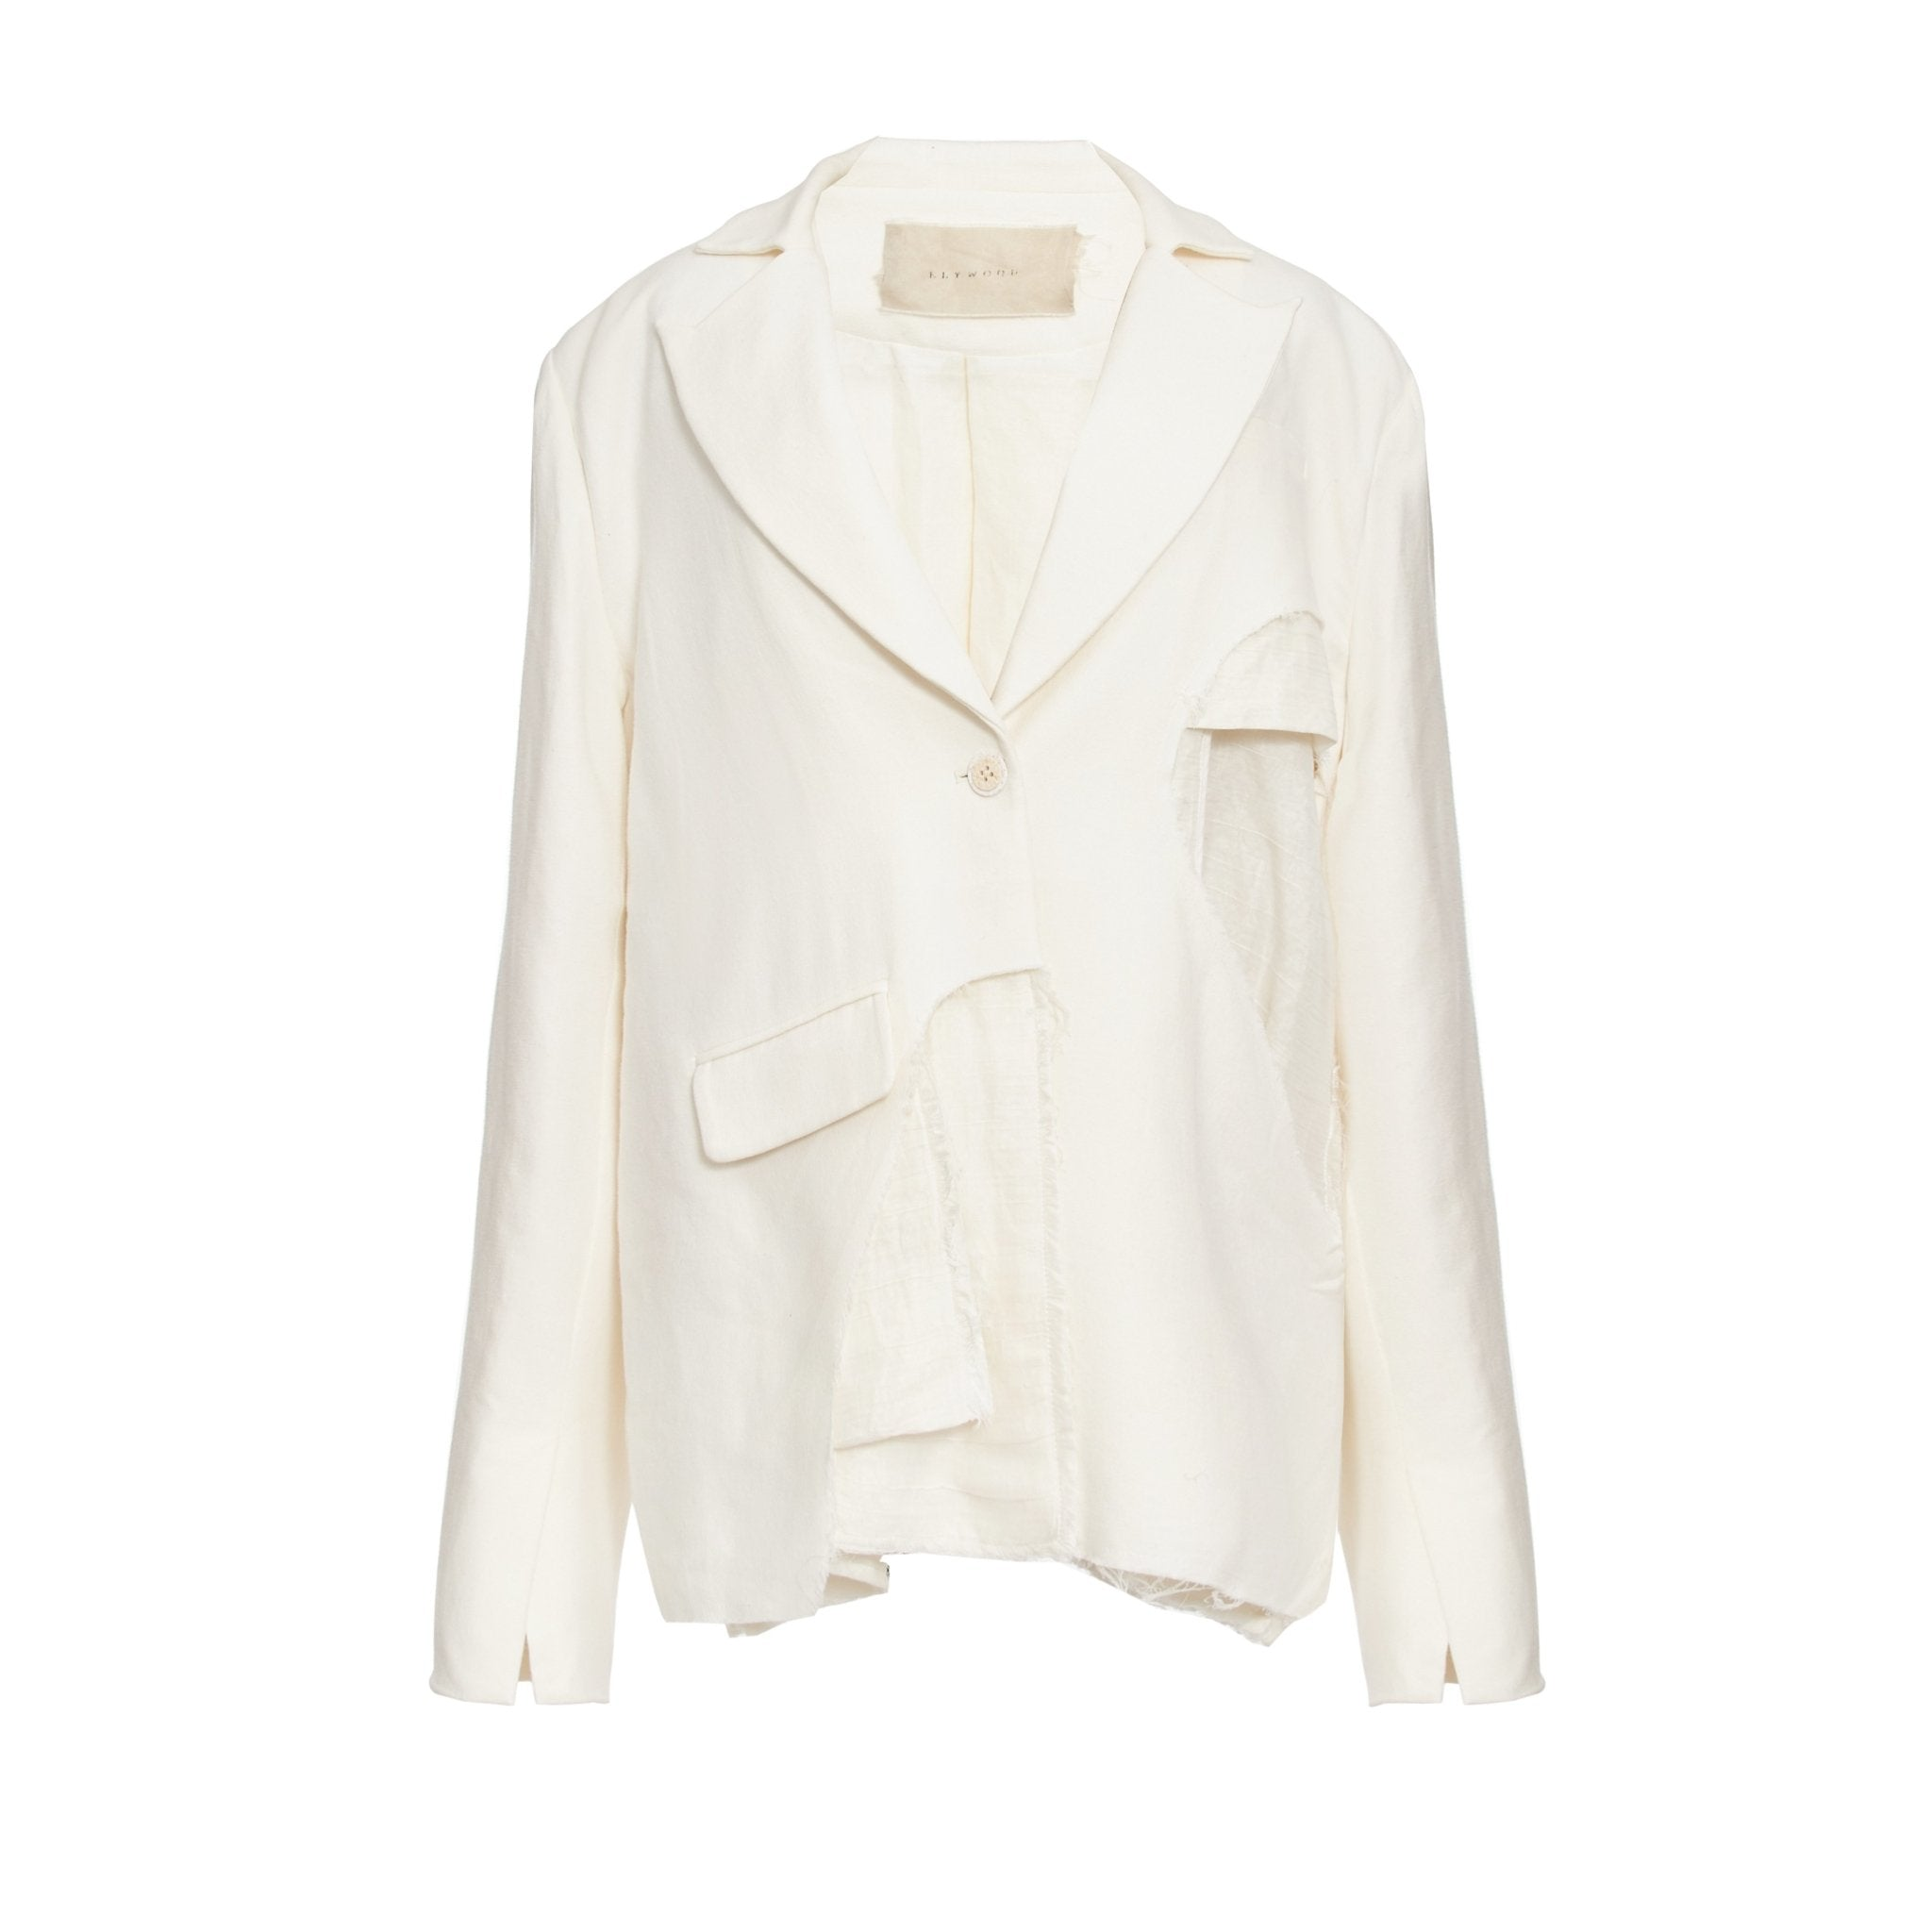 ELYWOOD White Destroyed Blazer Jacket | MADA IN CHINA